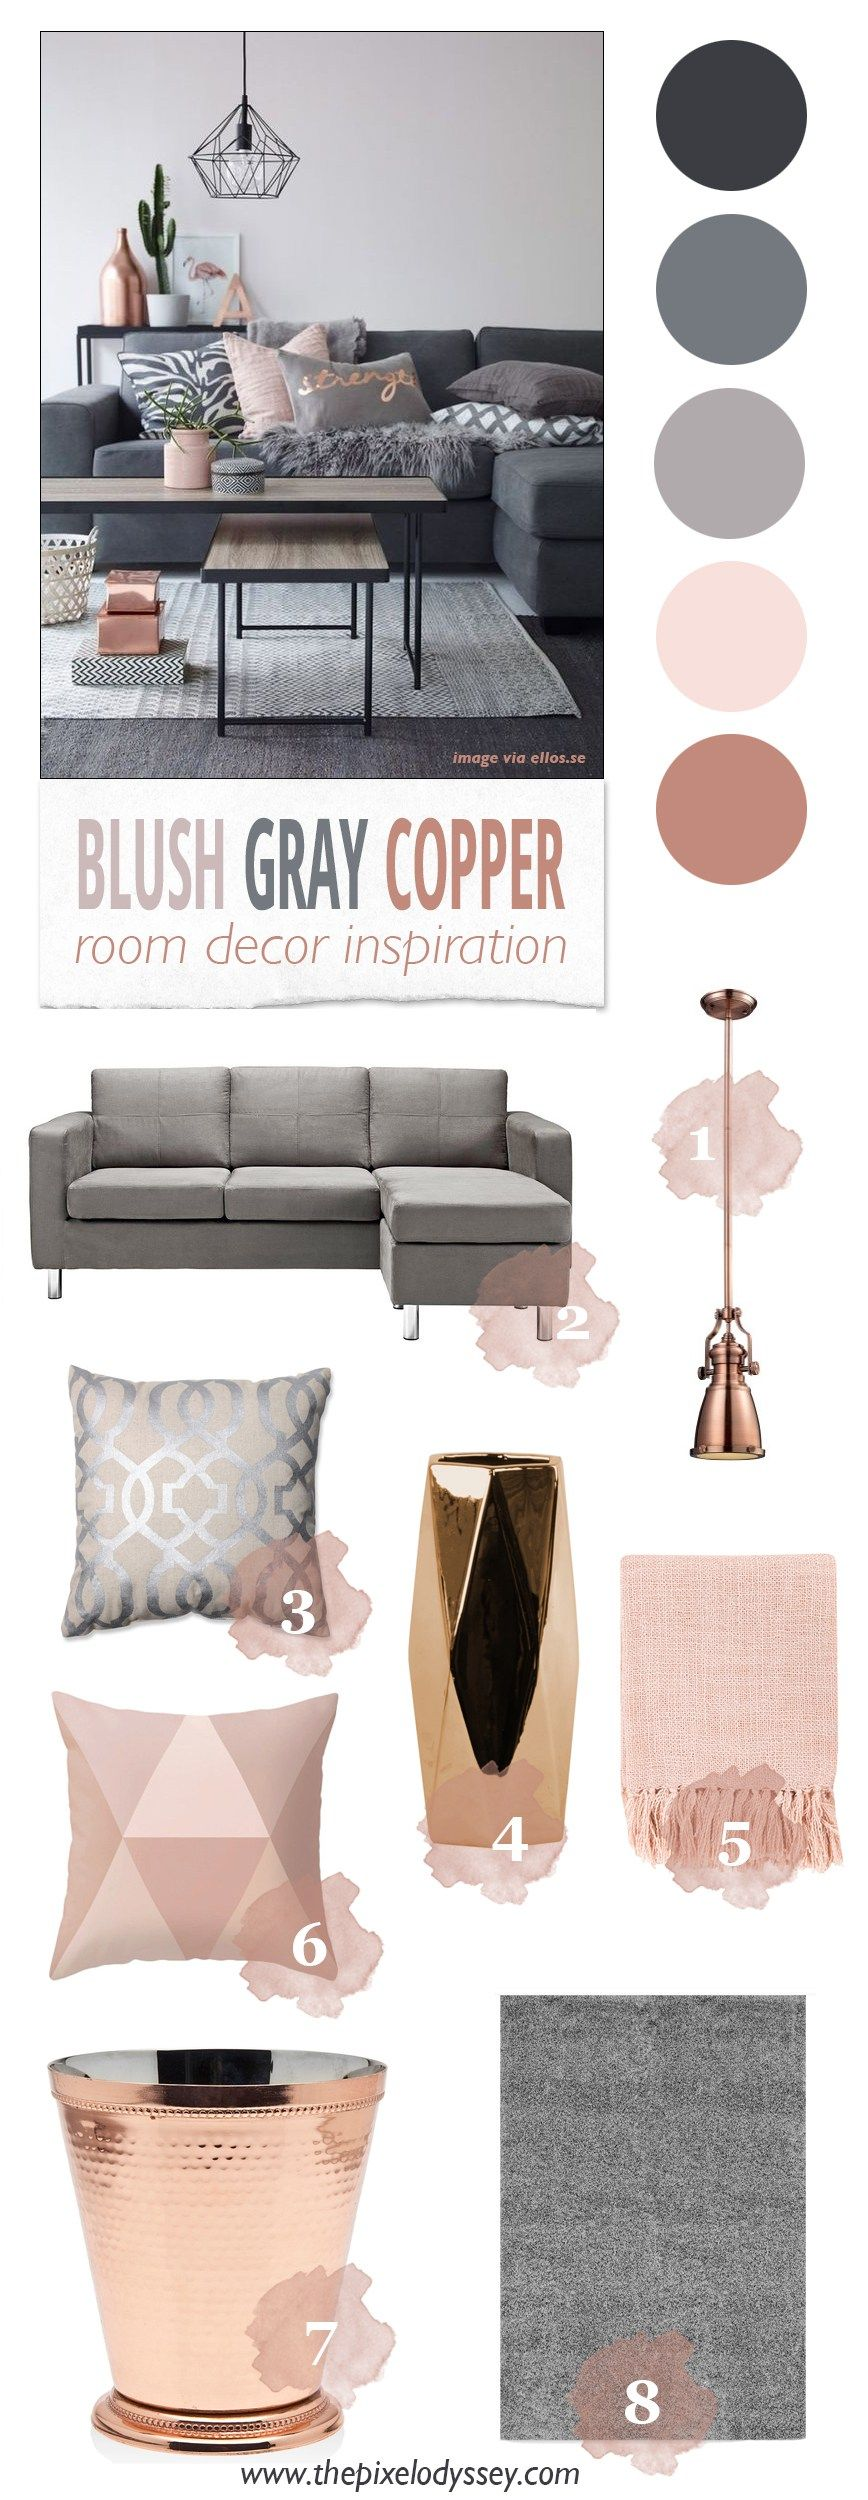 Best Blush Gray Copper Room Decor Inspiration Room Decor 400 x 300